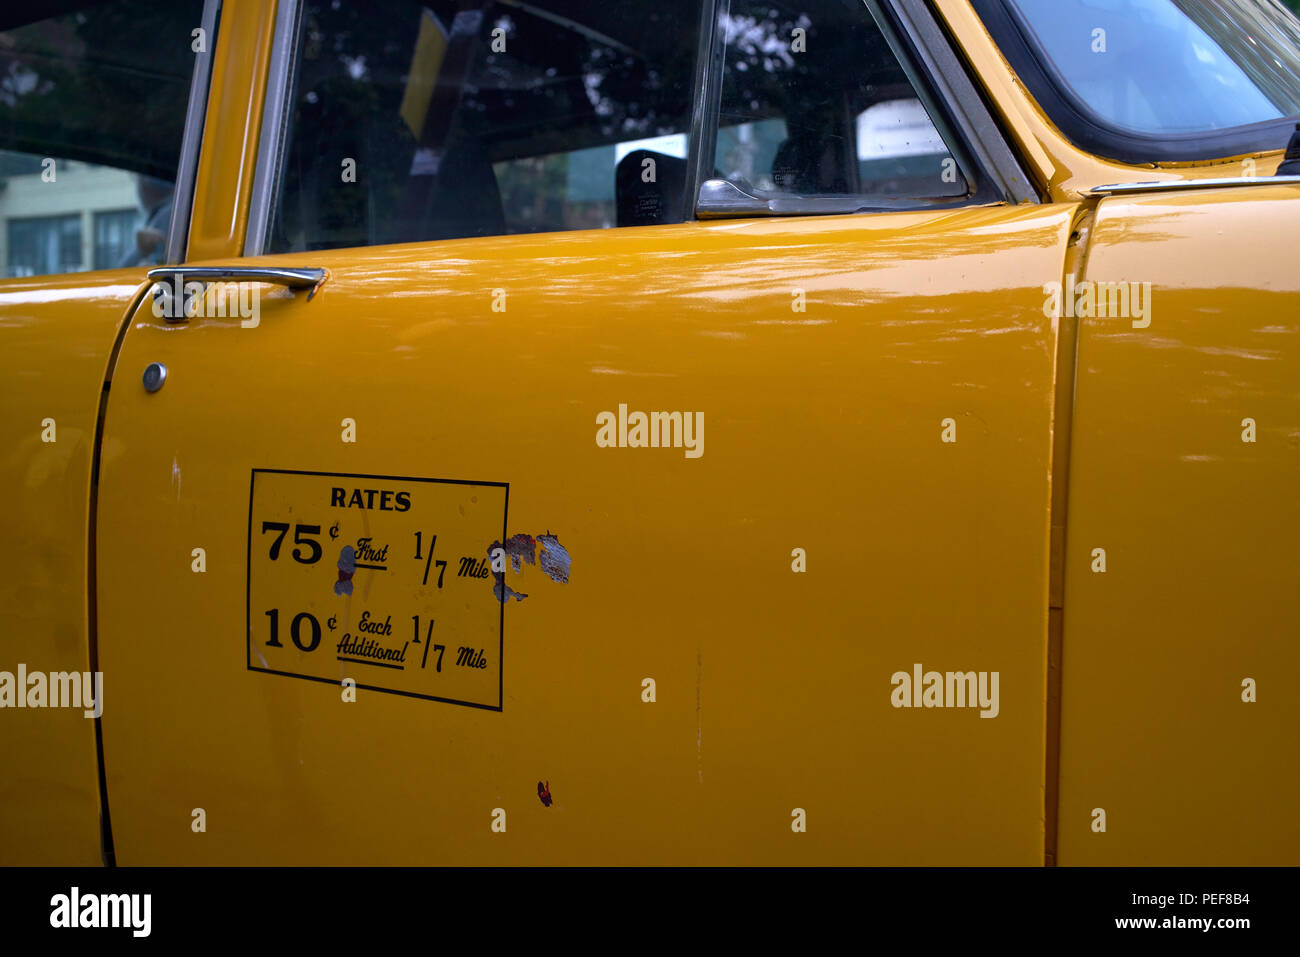 Detail of door with rates display of New York City vintage Checker taxicab - Stock Image